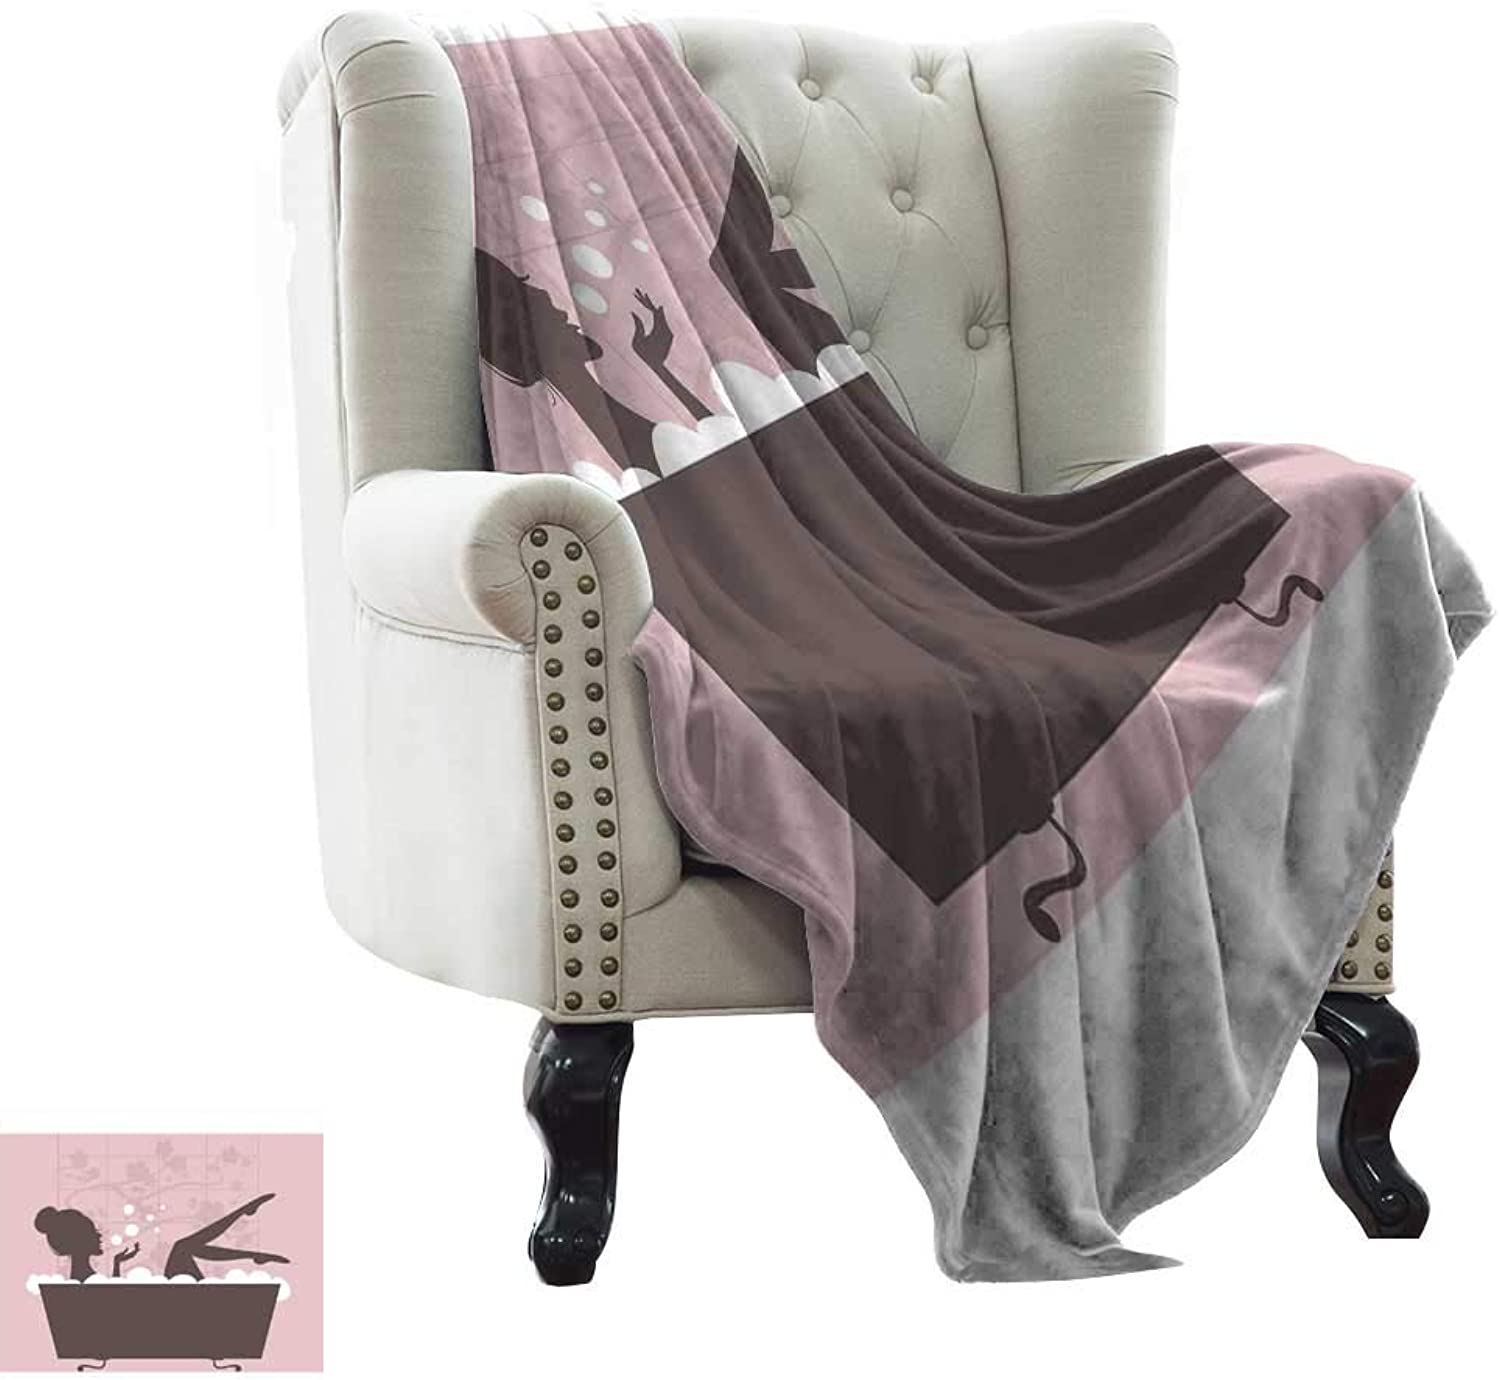 LsWOW Flannel Fleece Blanket Teens Girls,Beautiful Woman in Bath Tub Spa Treatment Relaxing Concept Vintage Style,Pink Dark Grey Reversible Soft Fabric for Couch Sofa Easy Care 60 x62